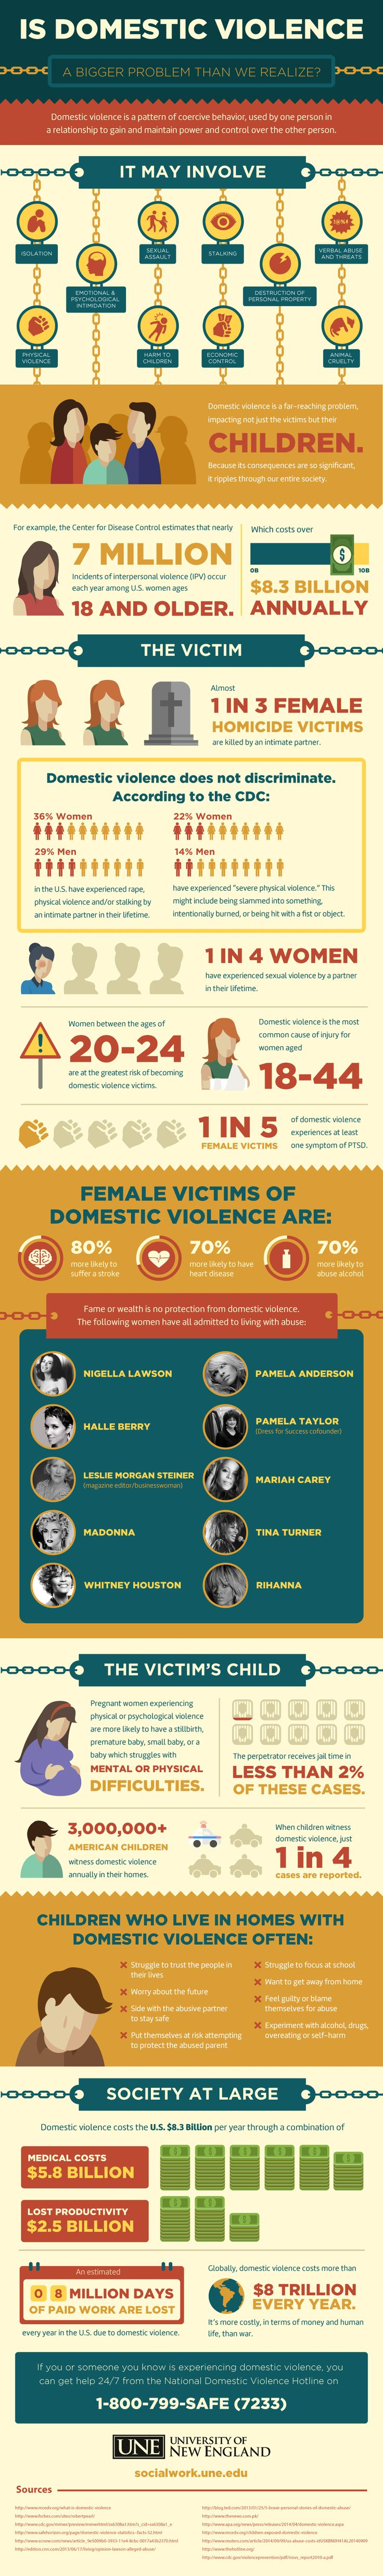 dating abuse articles 2015